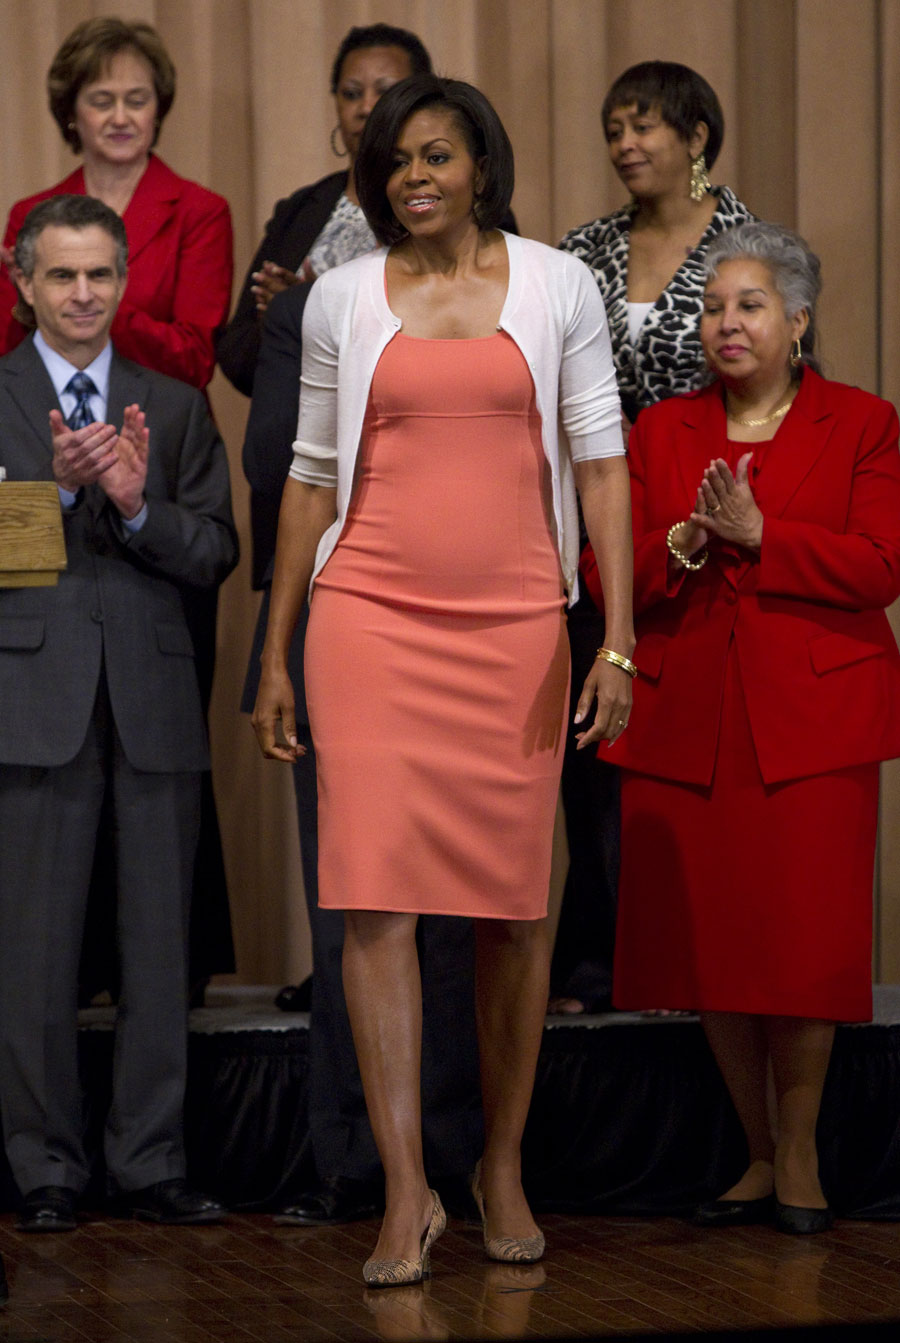 What do you think about Michelle Obama?